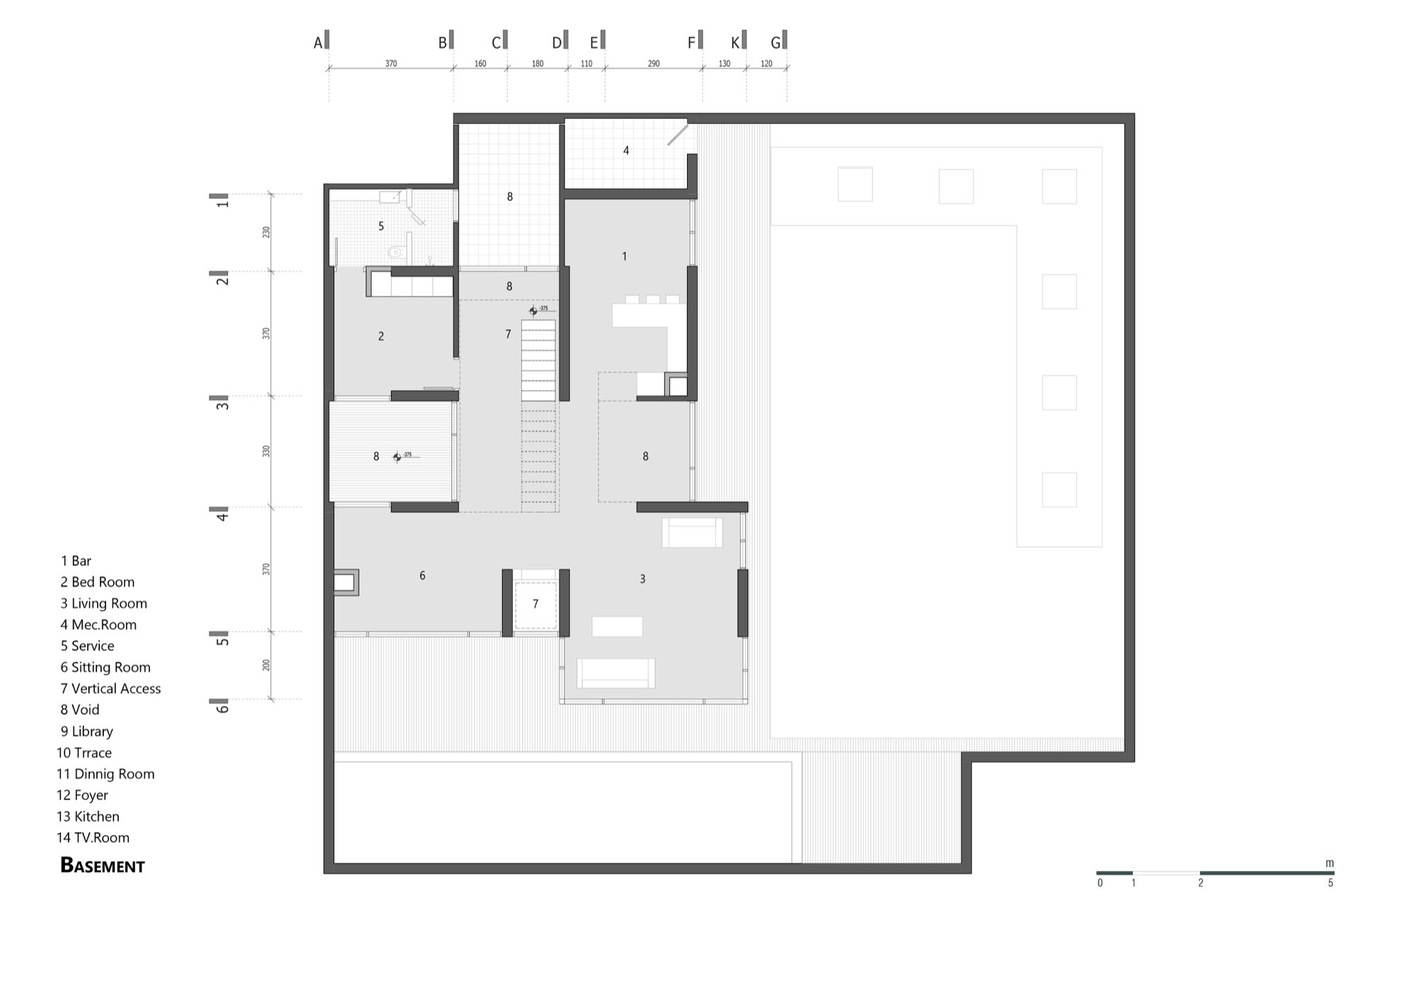 Villa 131,Basement Floor Plan